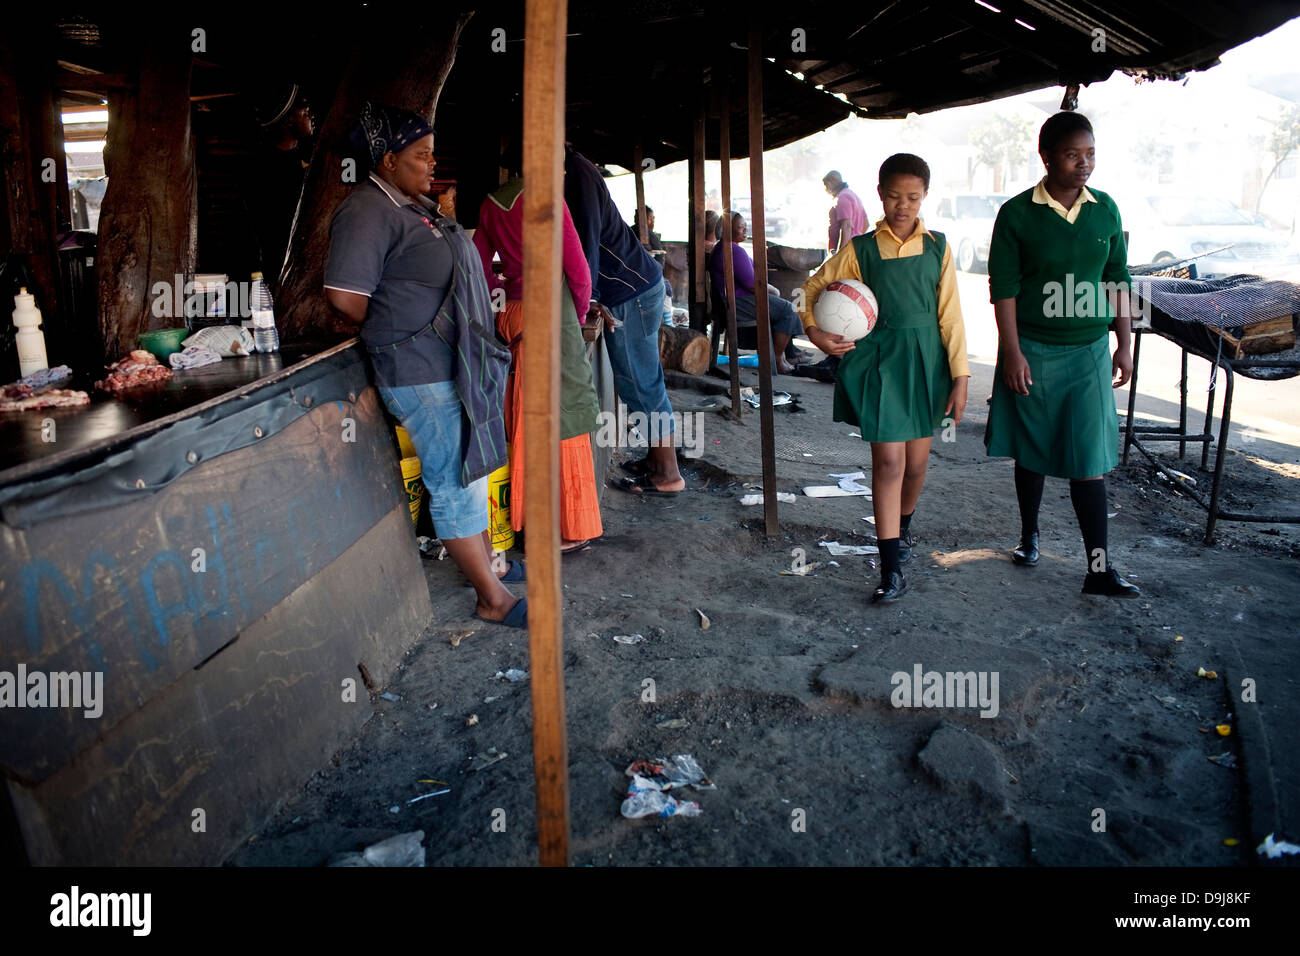 Grassroot Soccer uses power soccer to educate inspire mobilize communities to stop spread HIV Likhona Phakama walk - Stock Image